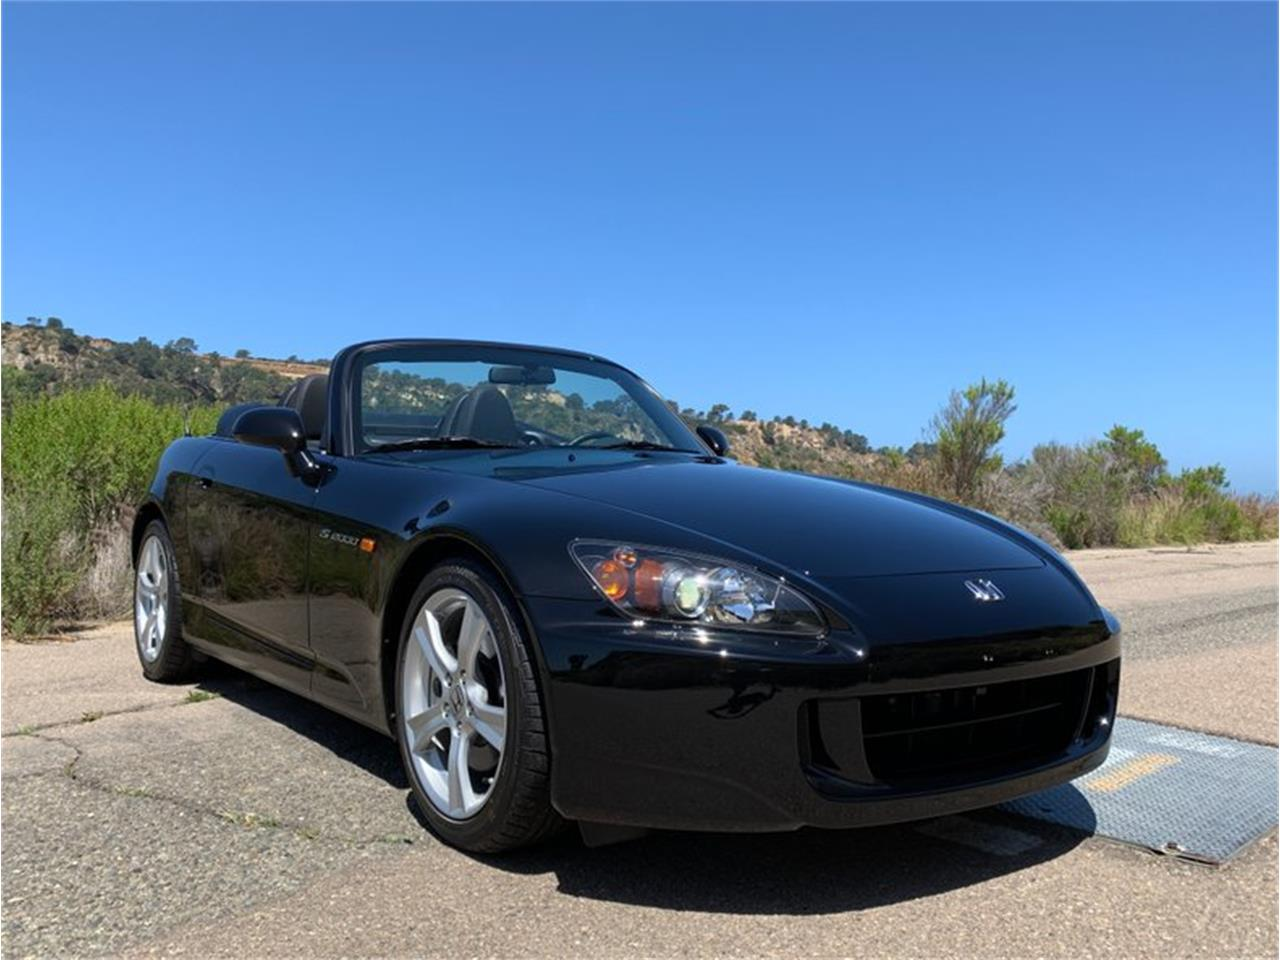 2009 Honda S2000 for sale in San Diego, CA – photo 8